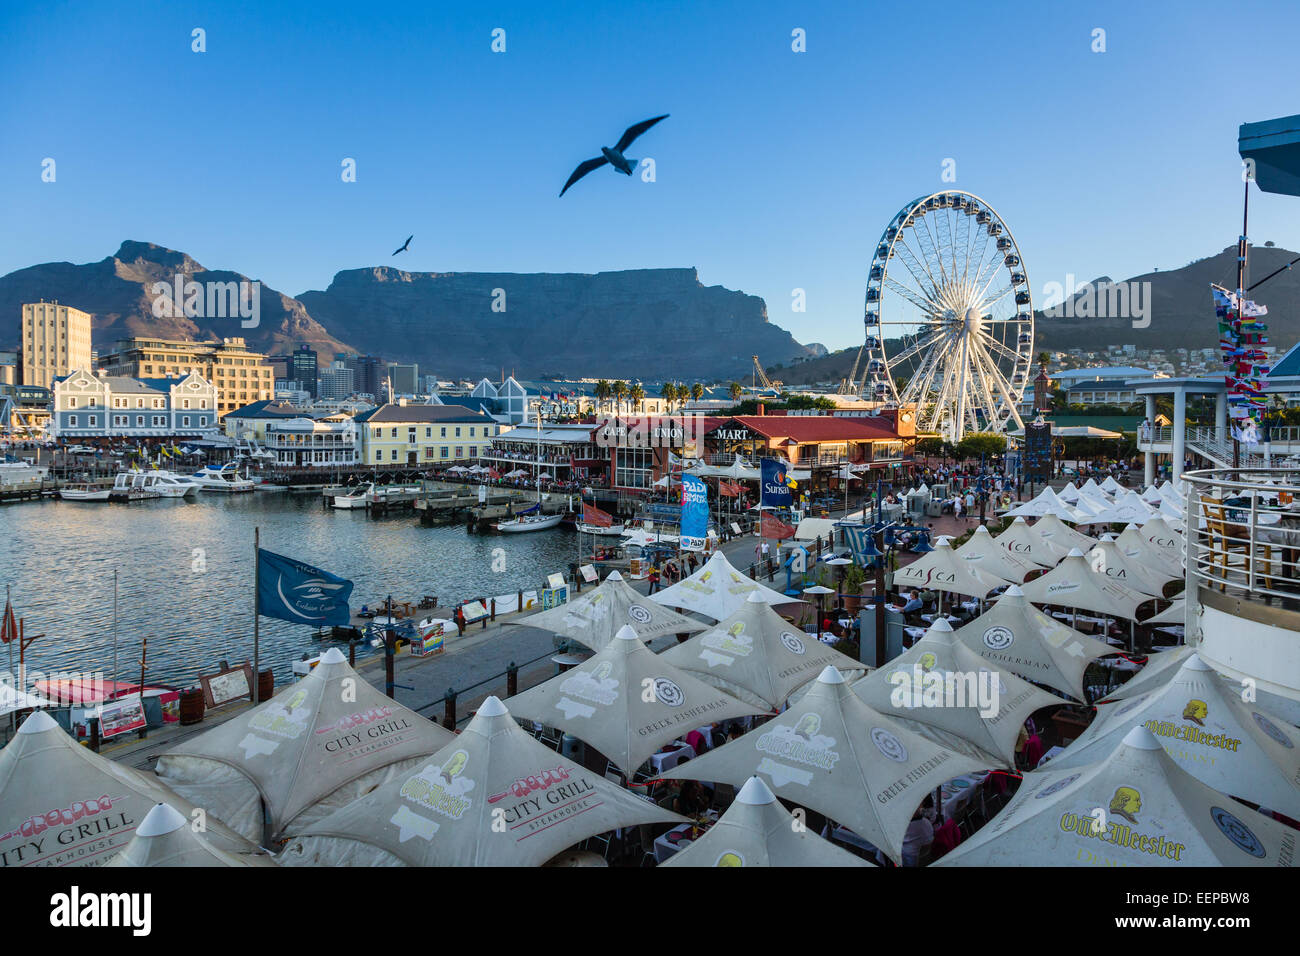 V&A waterfront in Cape Town South Africa. - Stock Image